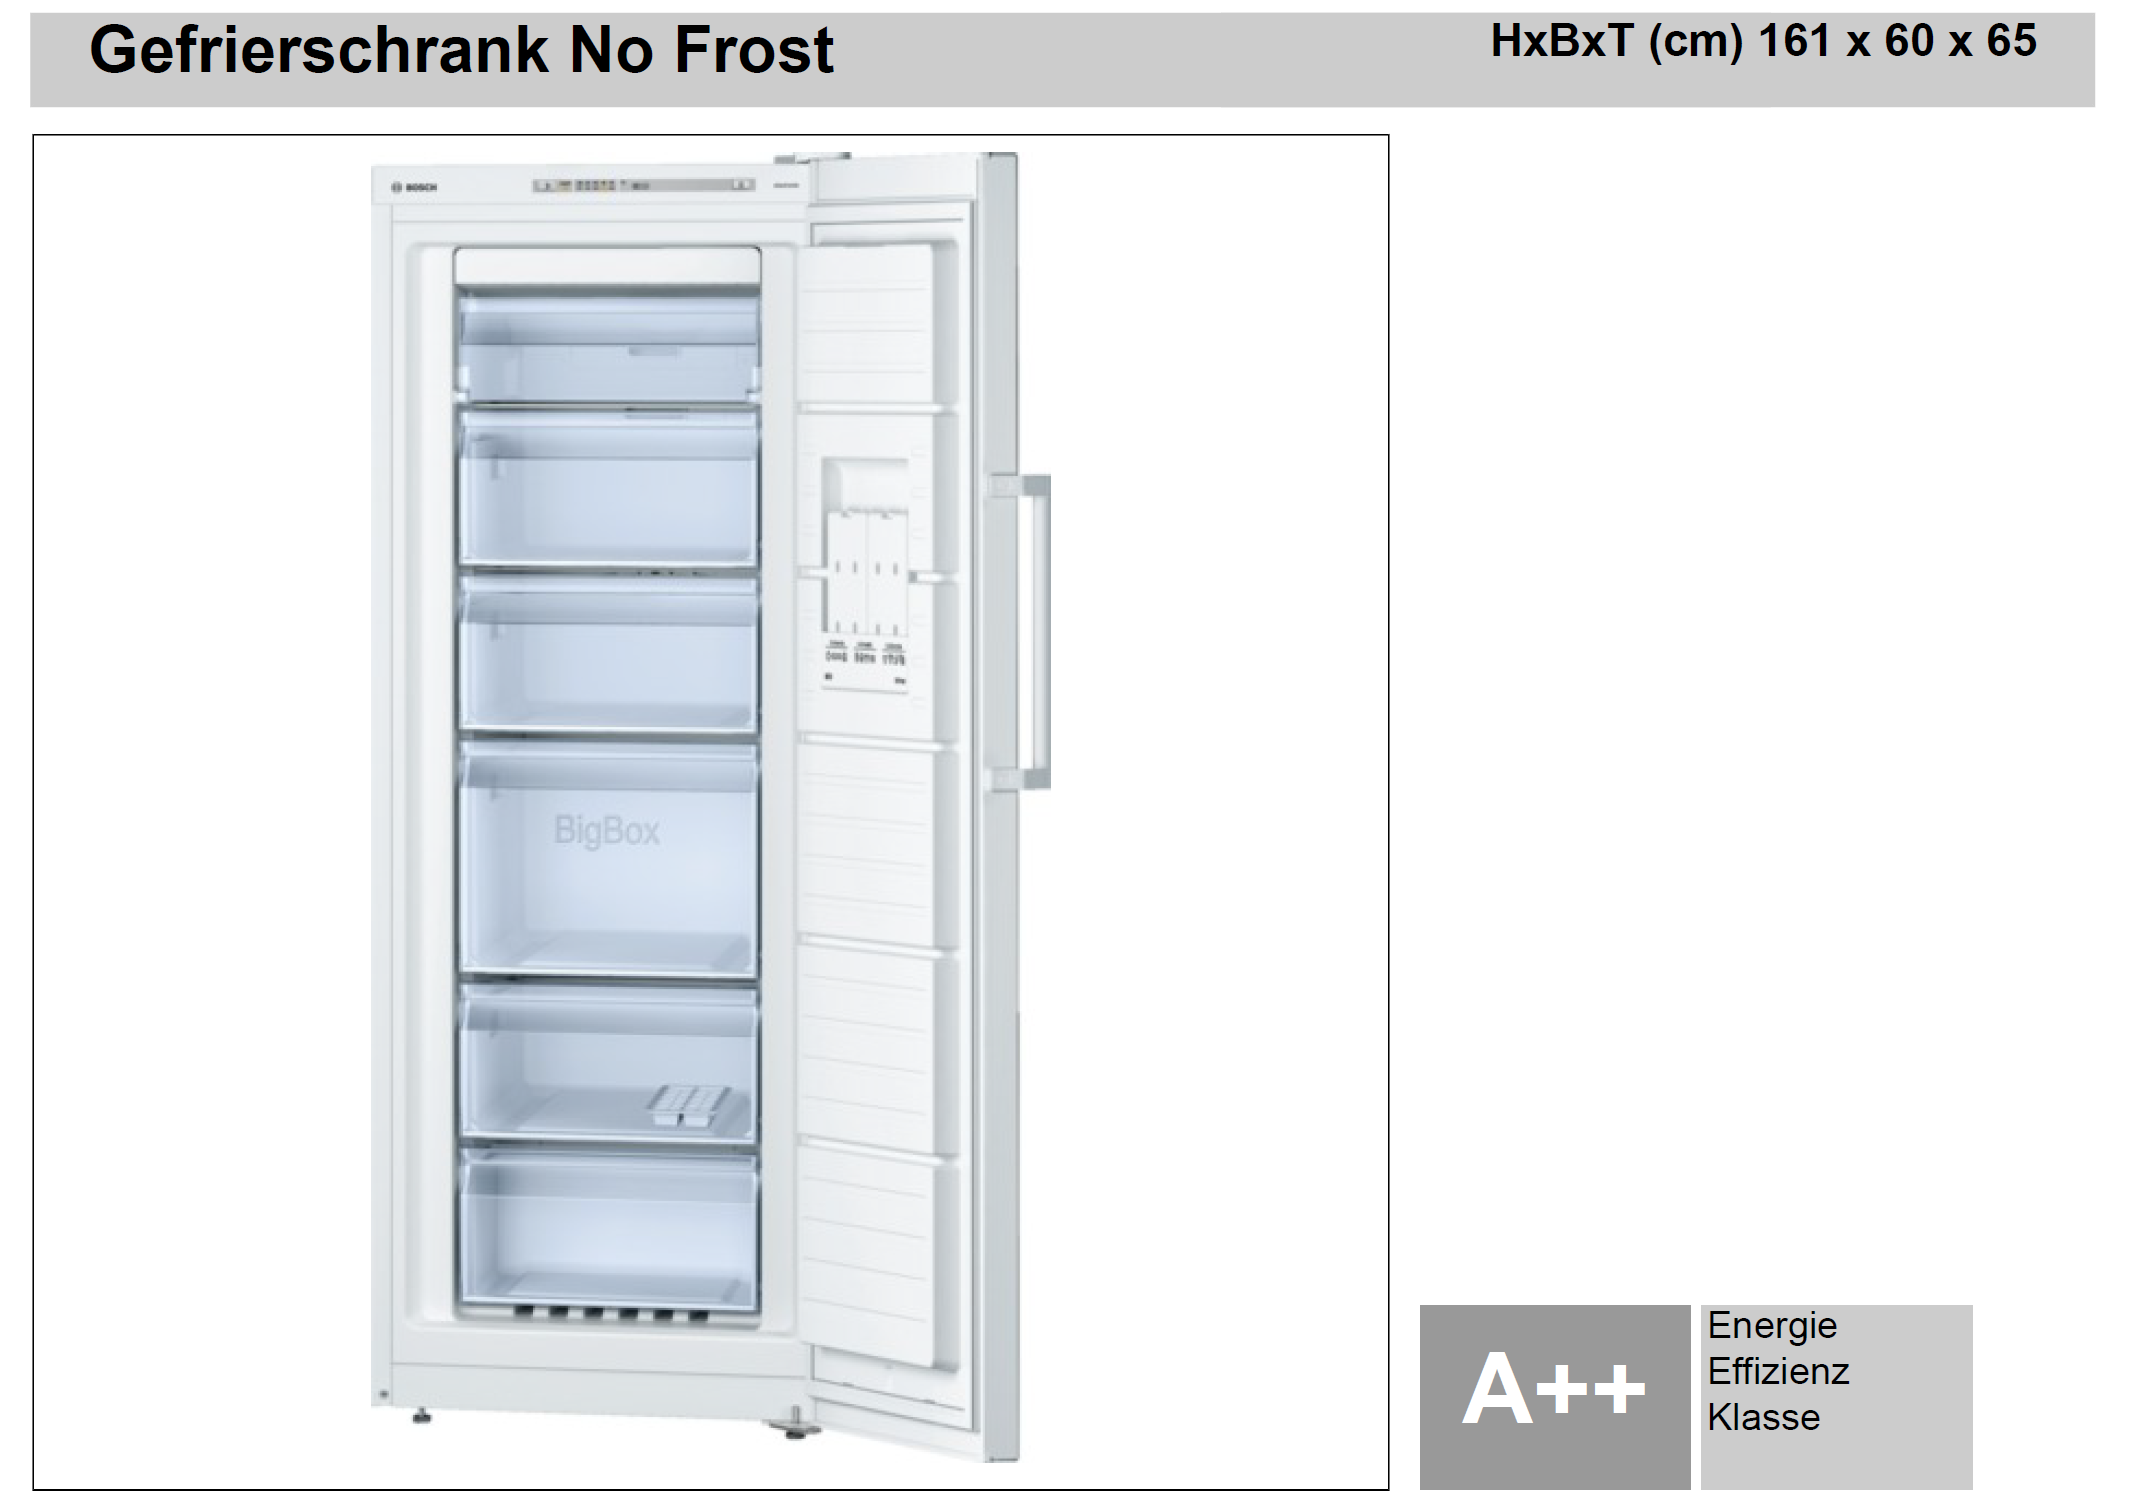 Bosch gefrierschrank no frost plan work elektrotechnik for No frost gefrierschrank